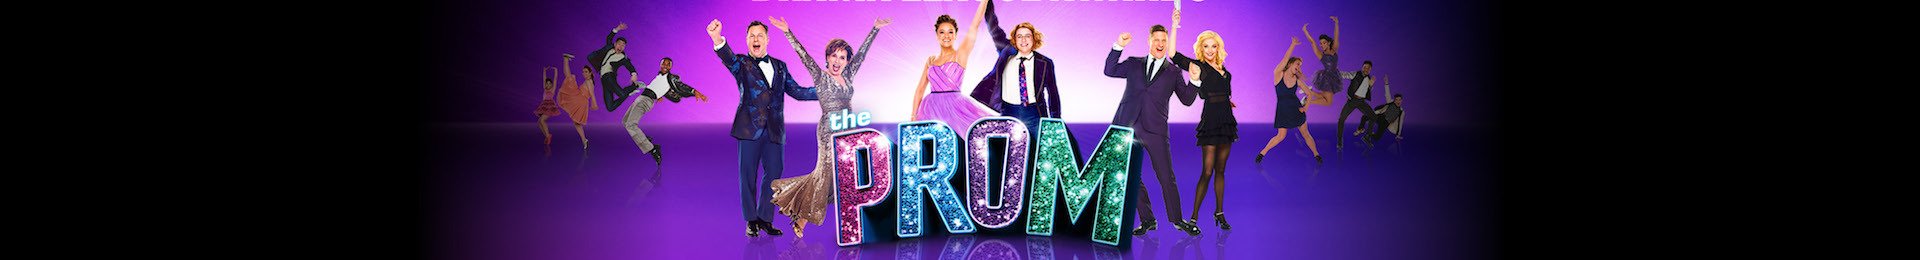 The Prom banner image